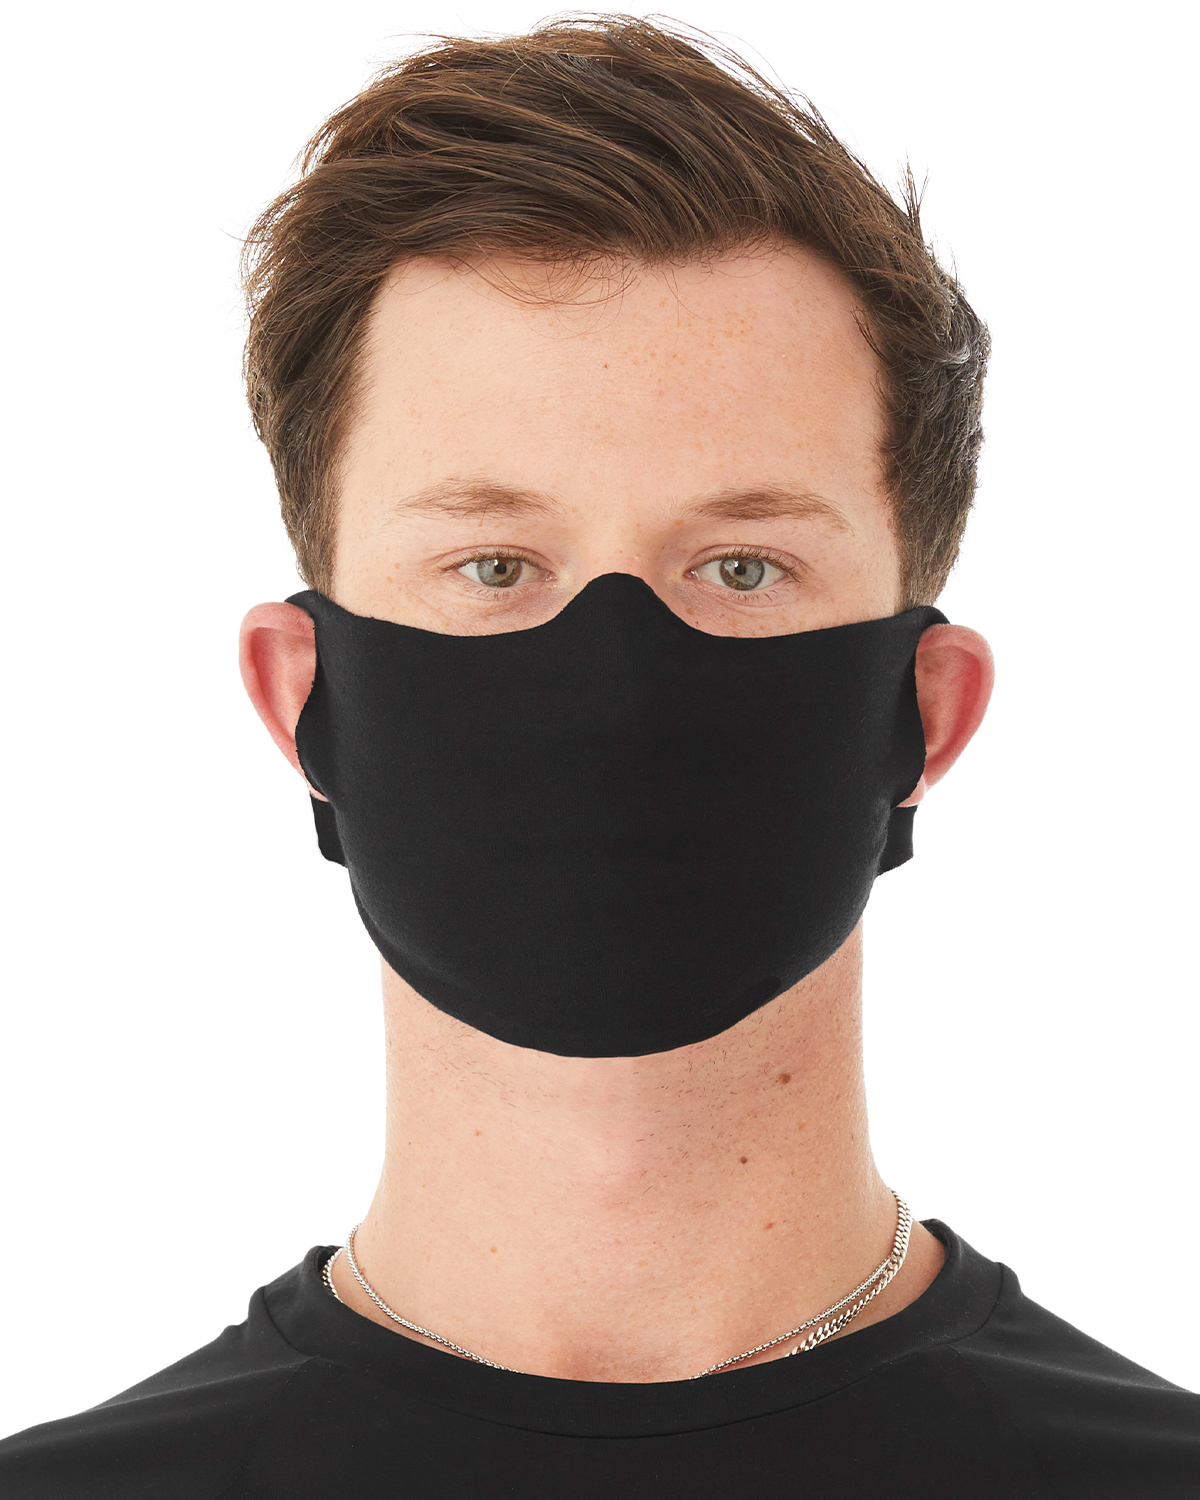 AUTO-CLUB Branded Face Masks (non-medical)